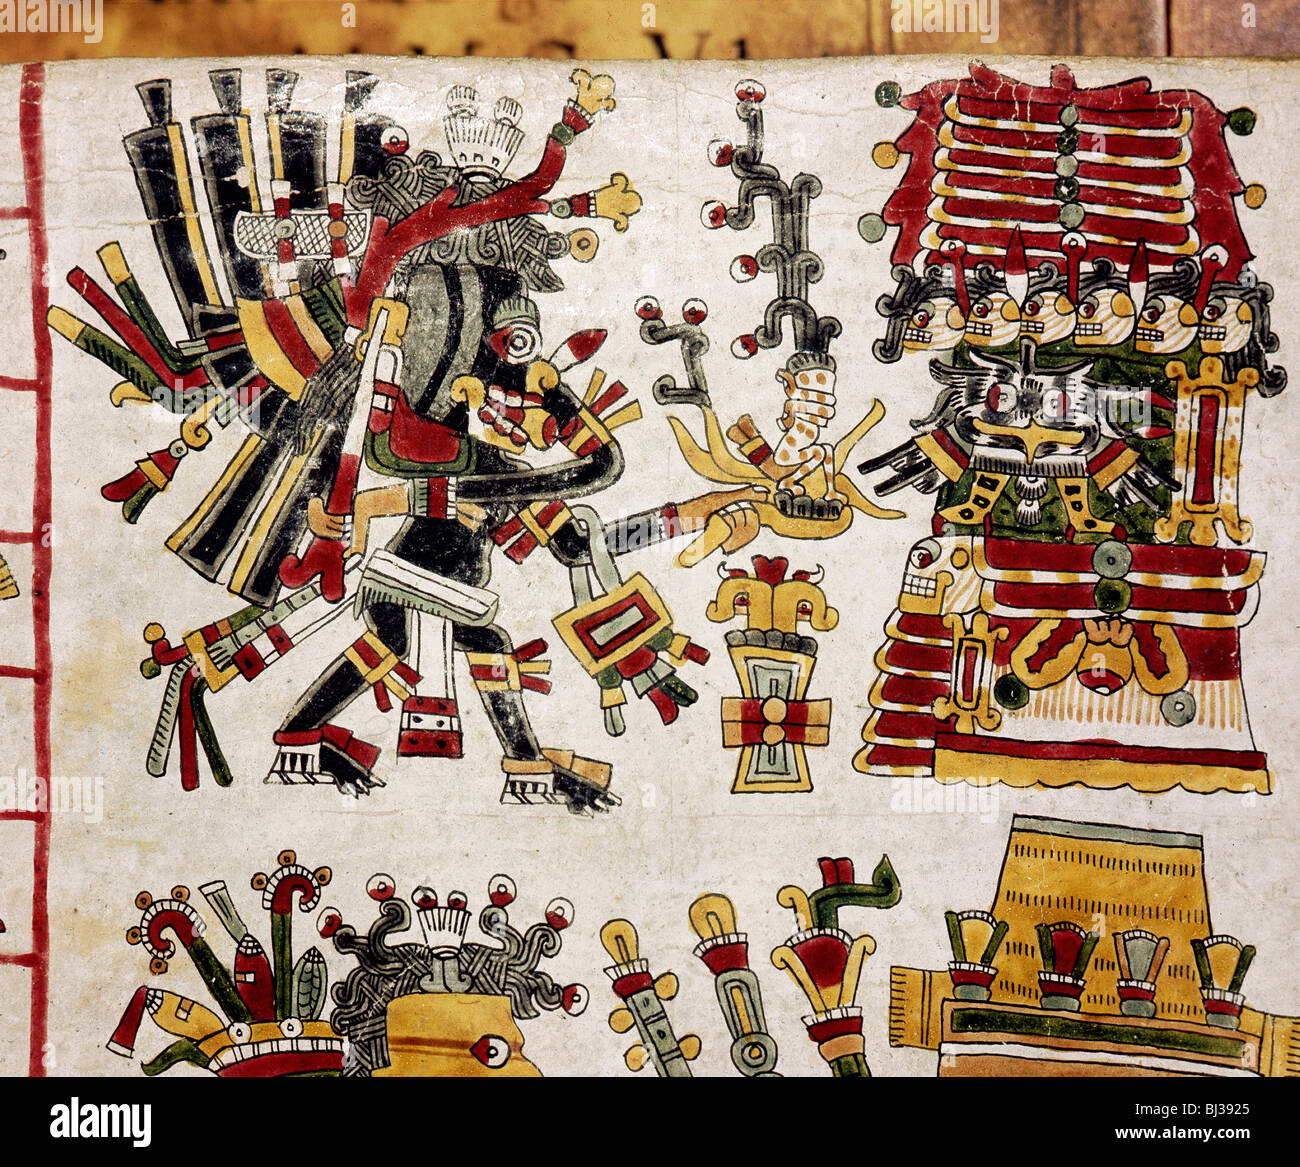 Page from the Codex Cospi, Mixtec, Mexico, c1350-1500. Artist: Werner Forman - Stock Image